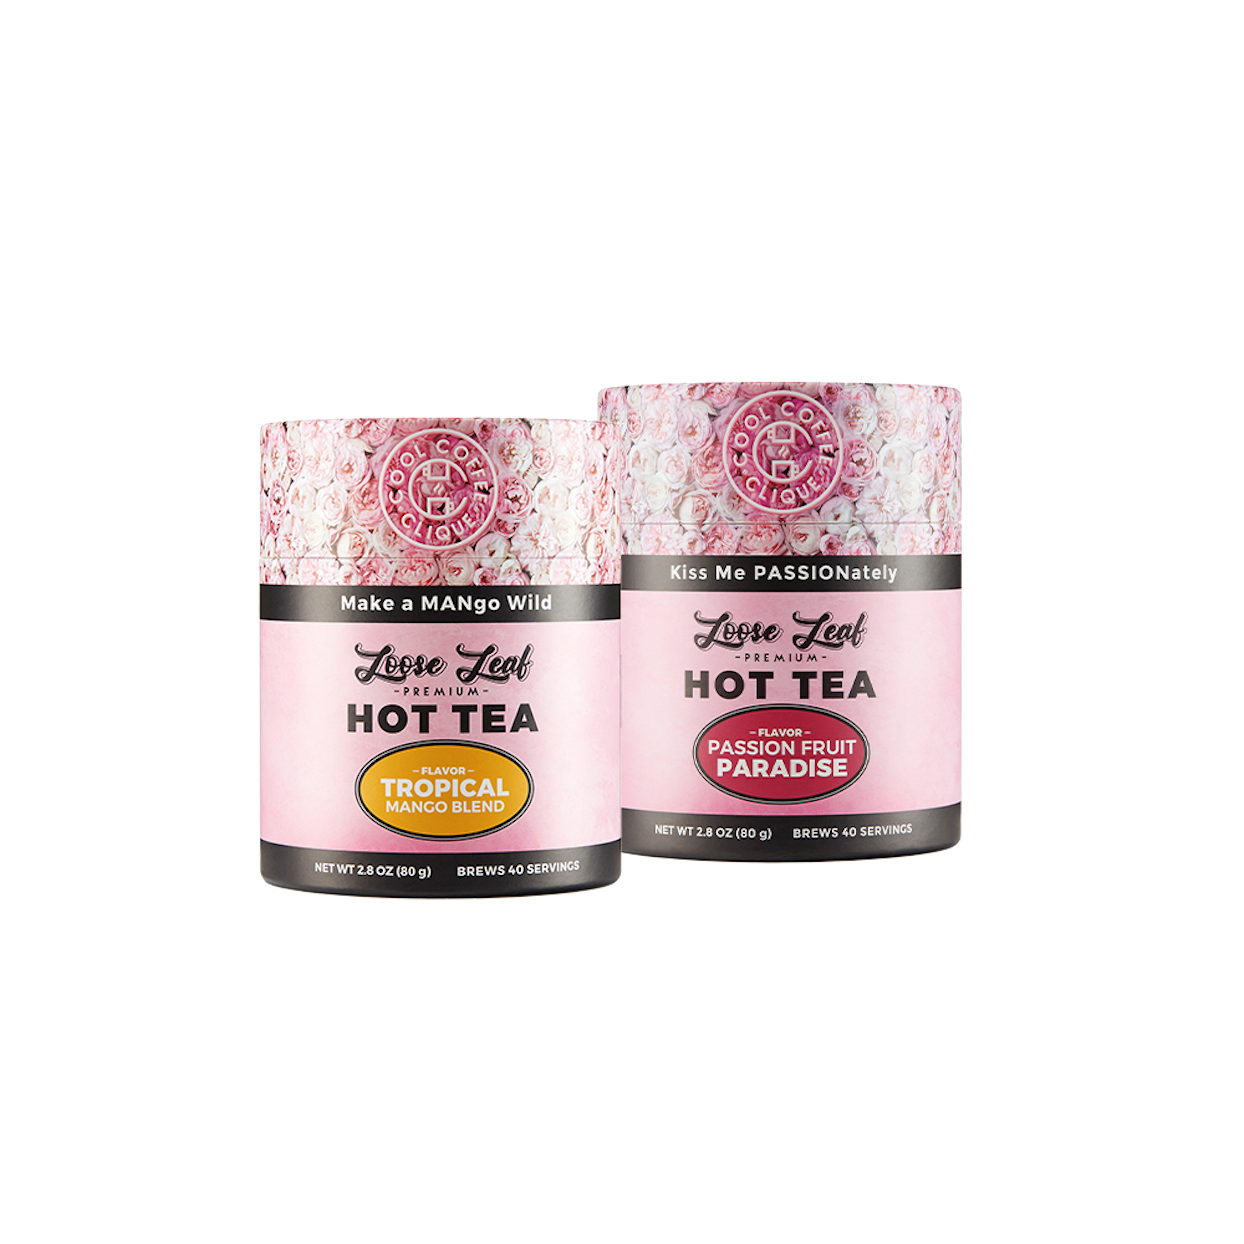 Product shot of the mango and passion fruit hot teas